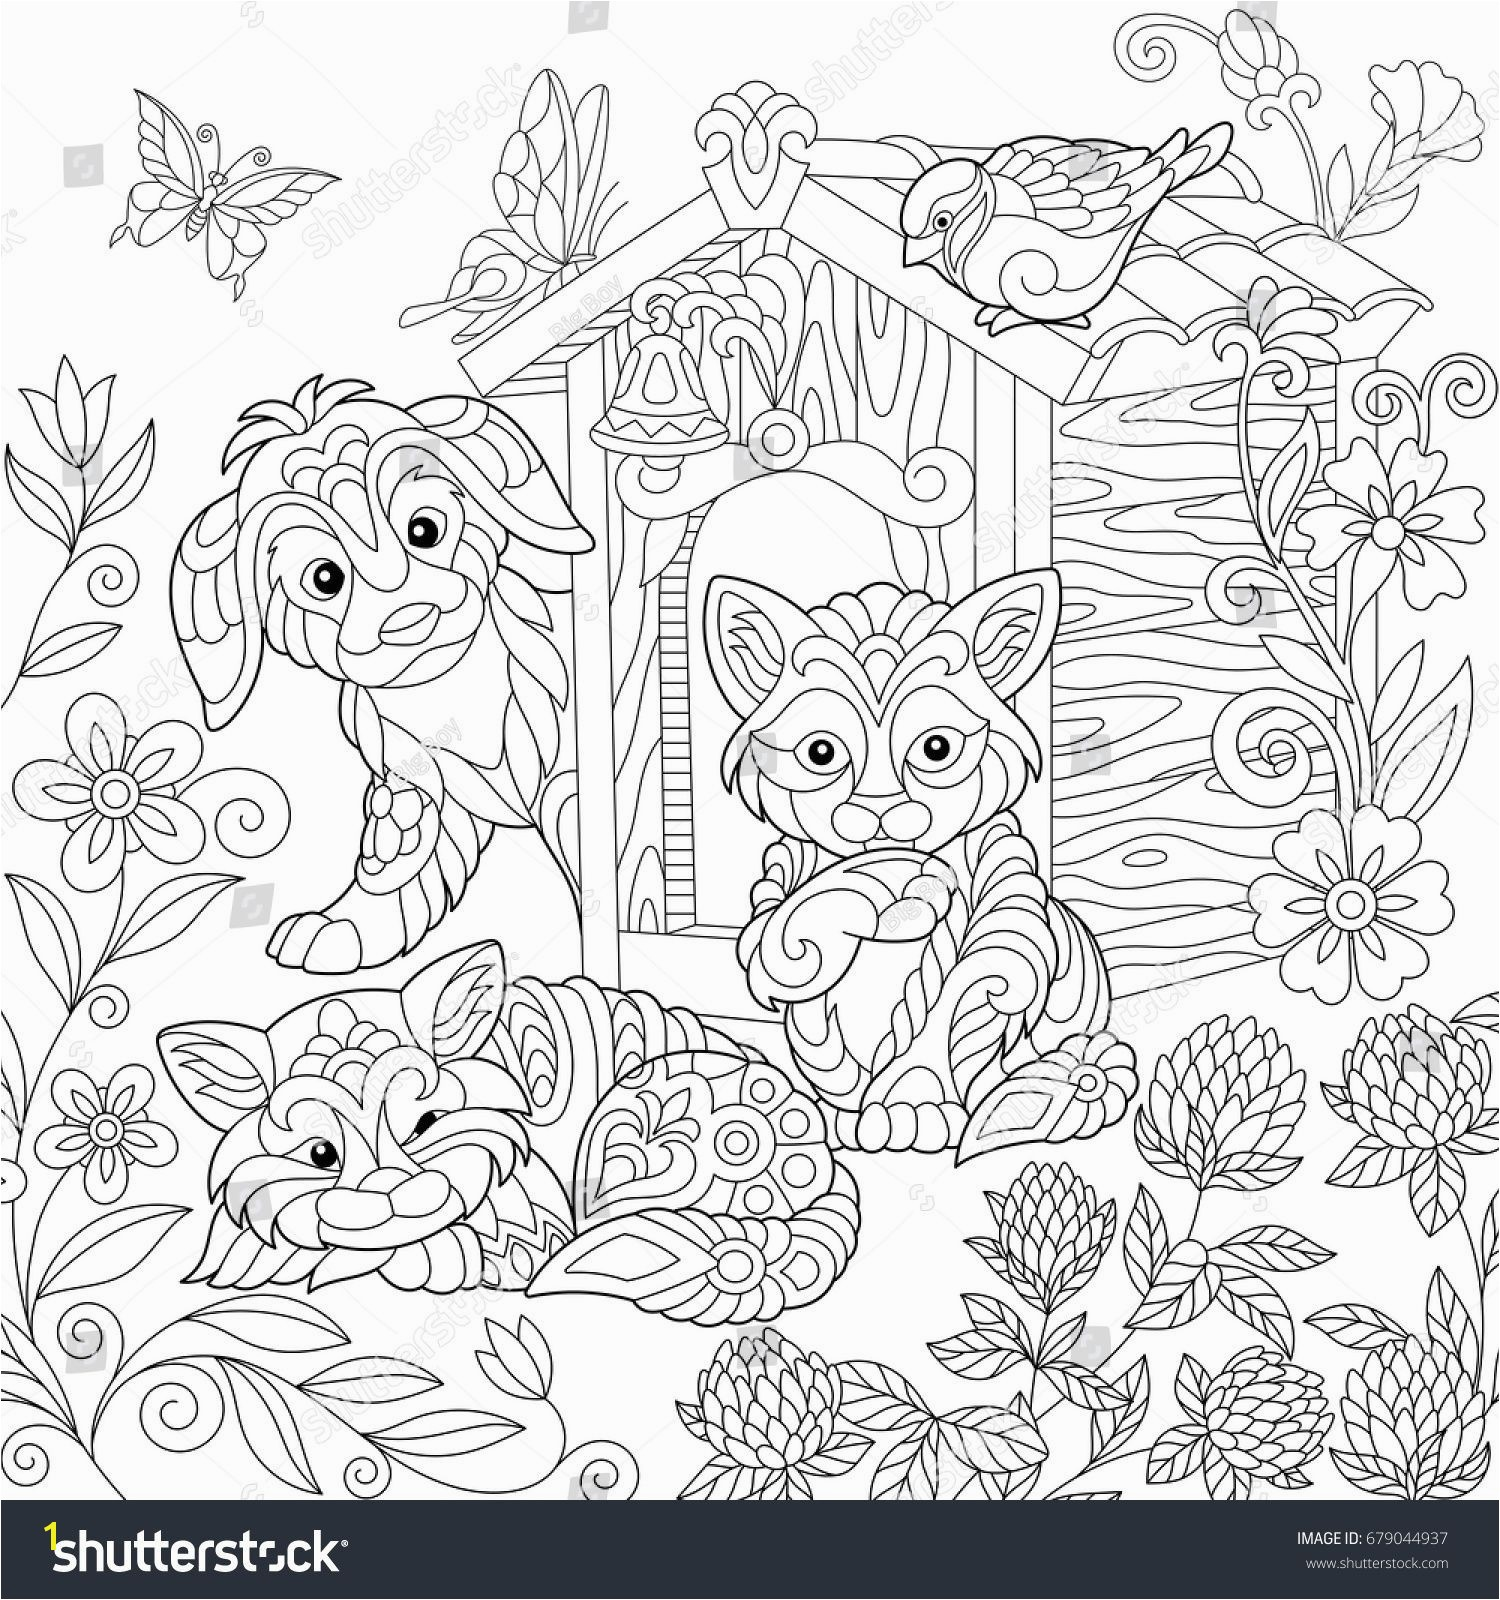 Printable Coloring Pages Coloring Book Unique Best Od Dog Coloring Pages Free